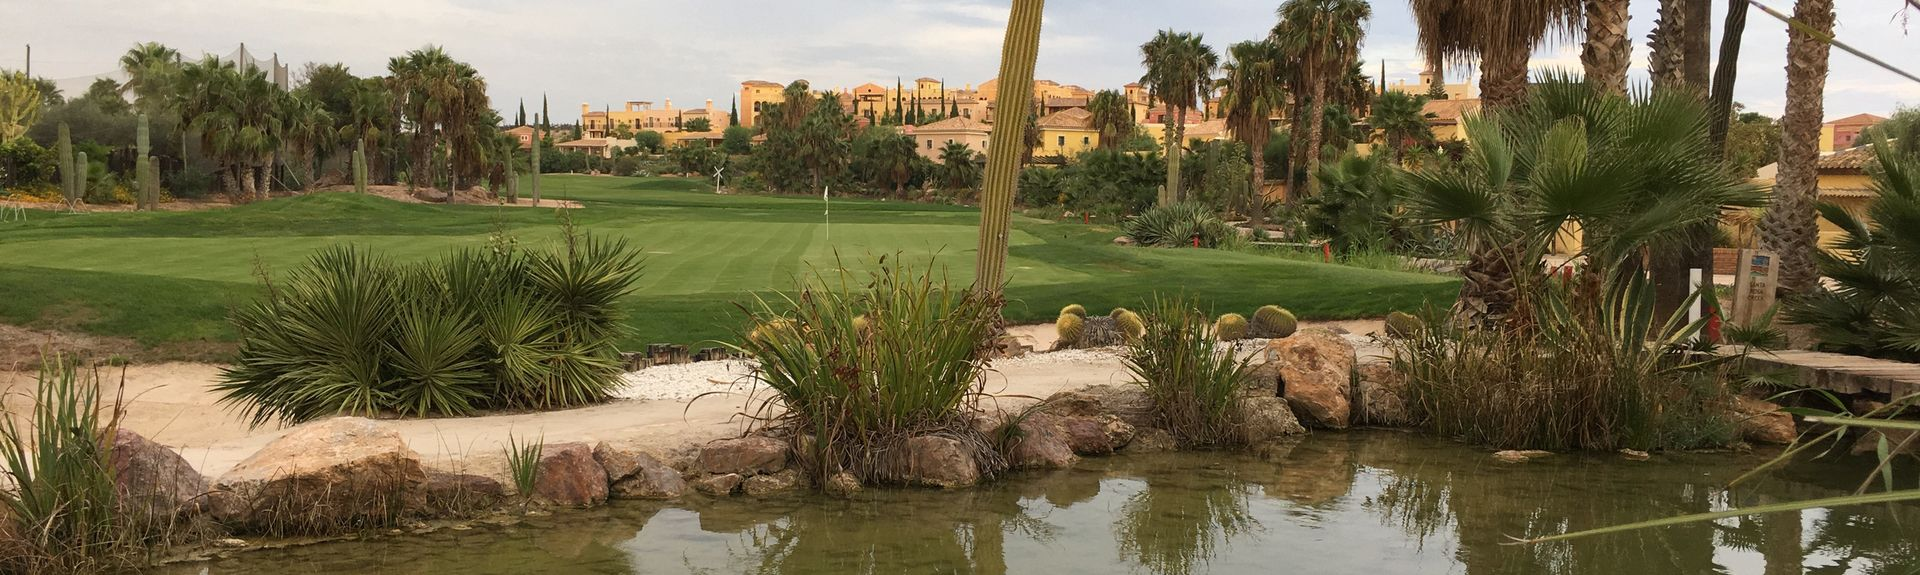 Desert Springs Family Leisure & Golf Resort, Cuevas Del Almanzora, Andalusia, Spain